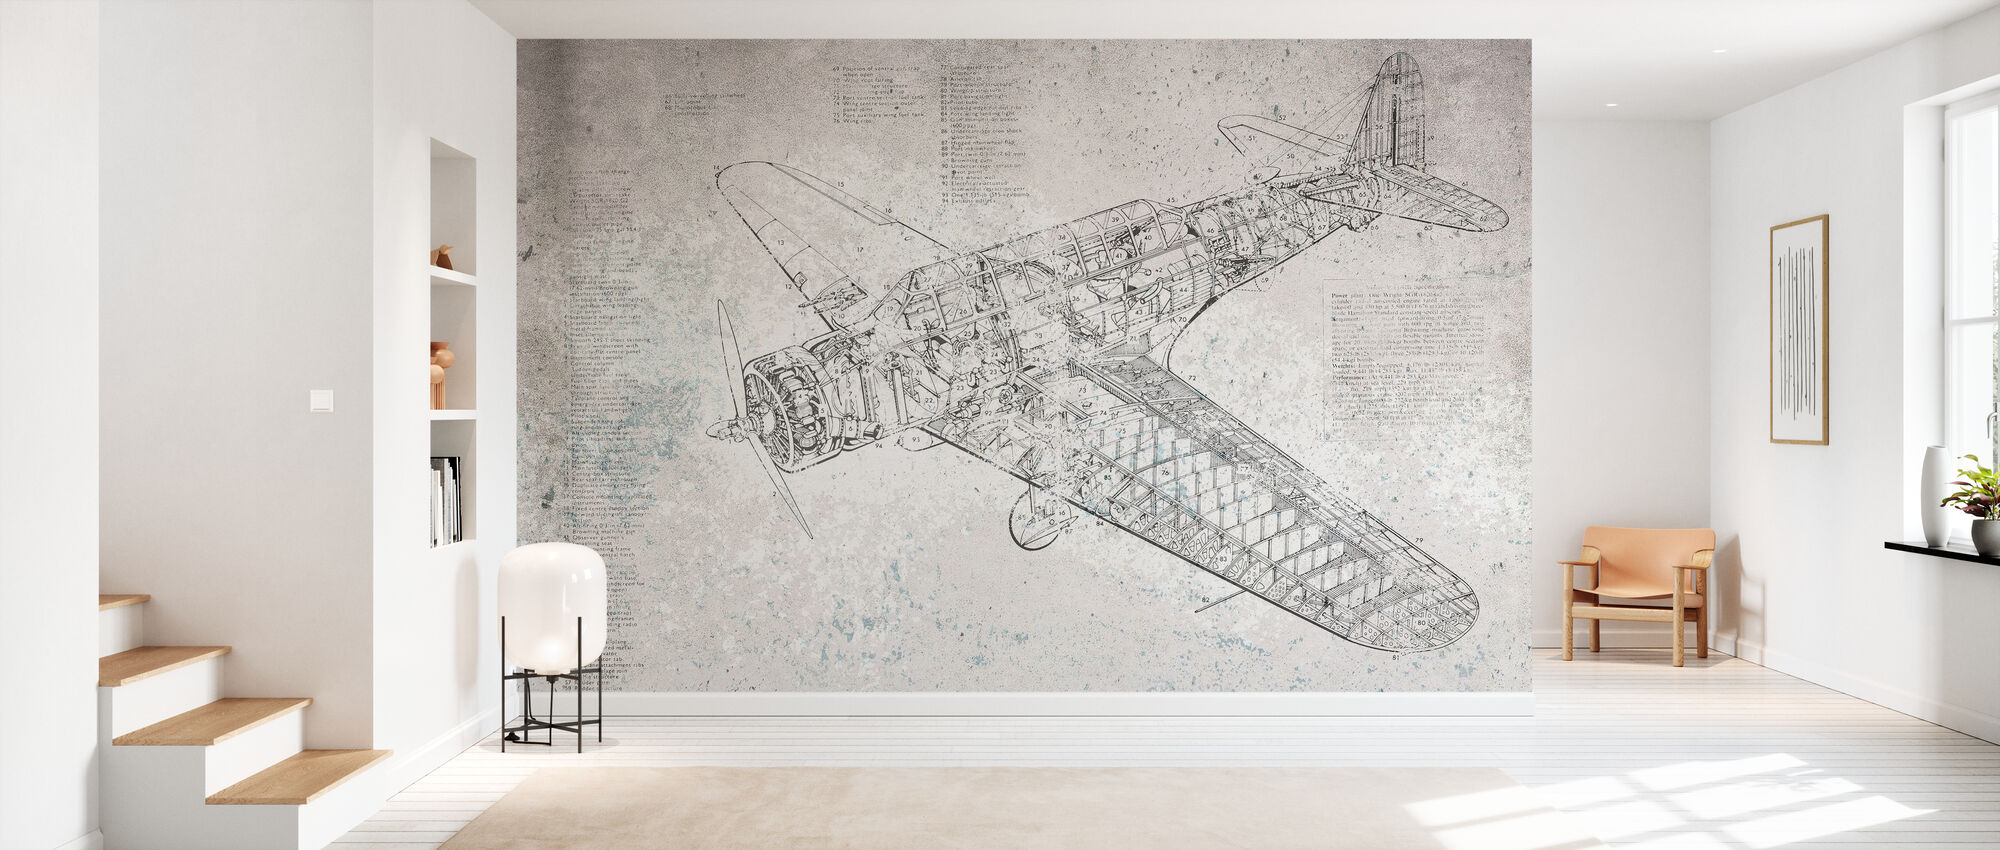 Retro Airplane - Wallpaper - Hallway